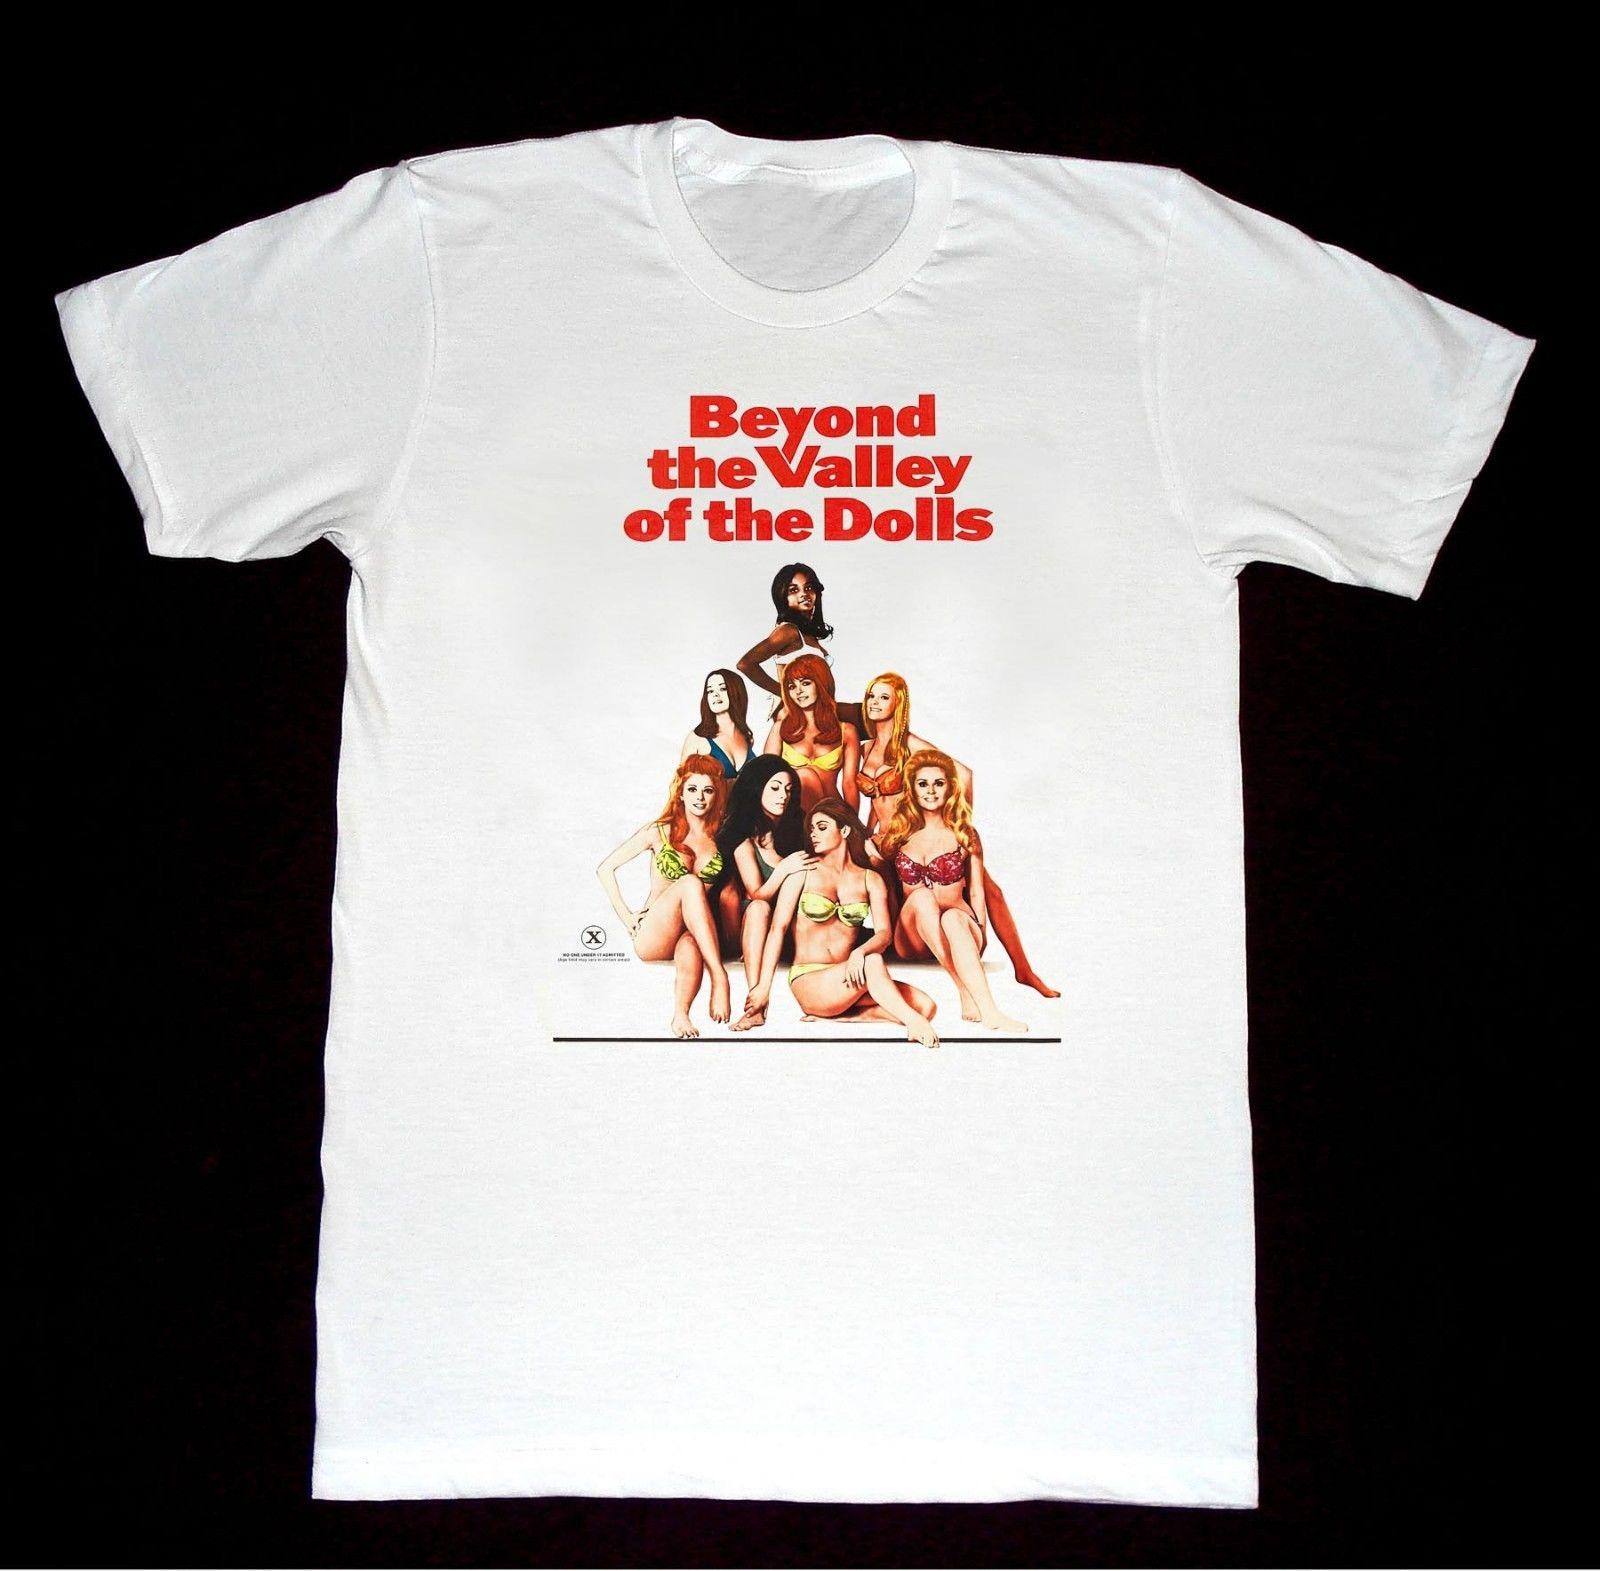 040265721b3 Beyond The Valley of The Dolls Tshirt F06 Shirt Vintage Cult Film ...